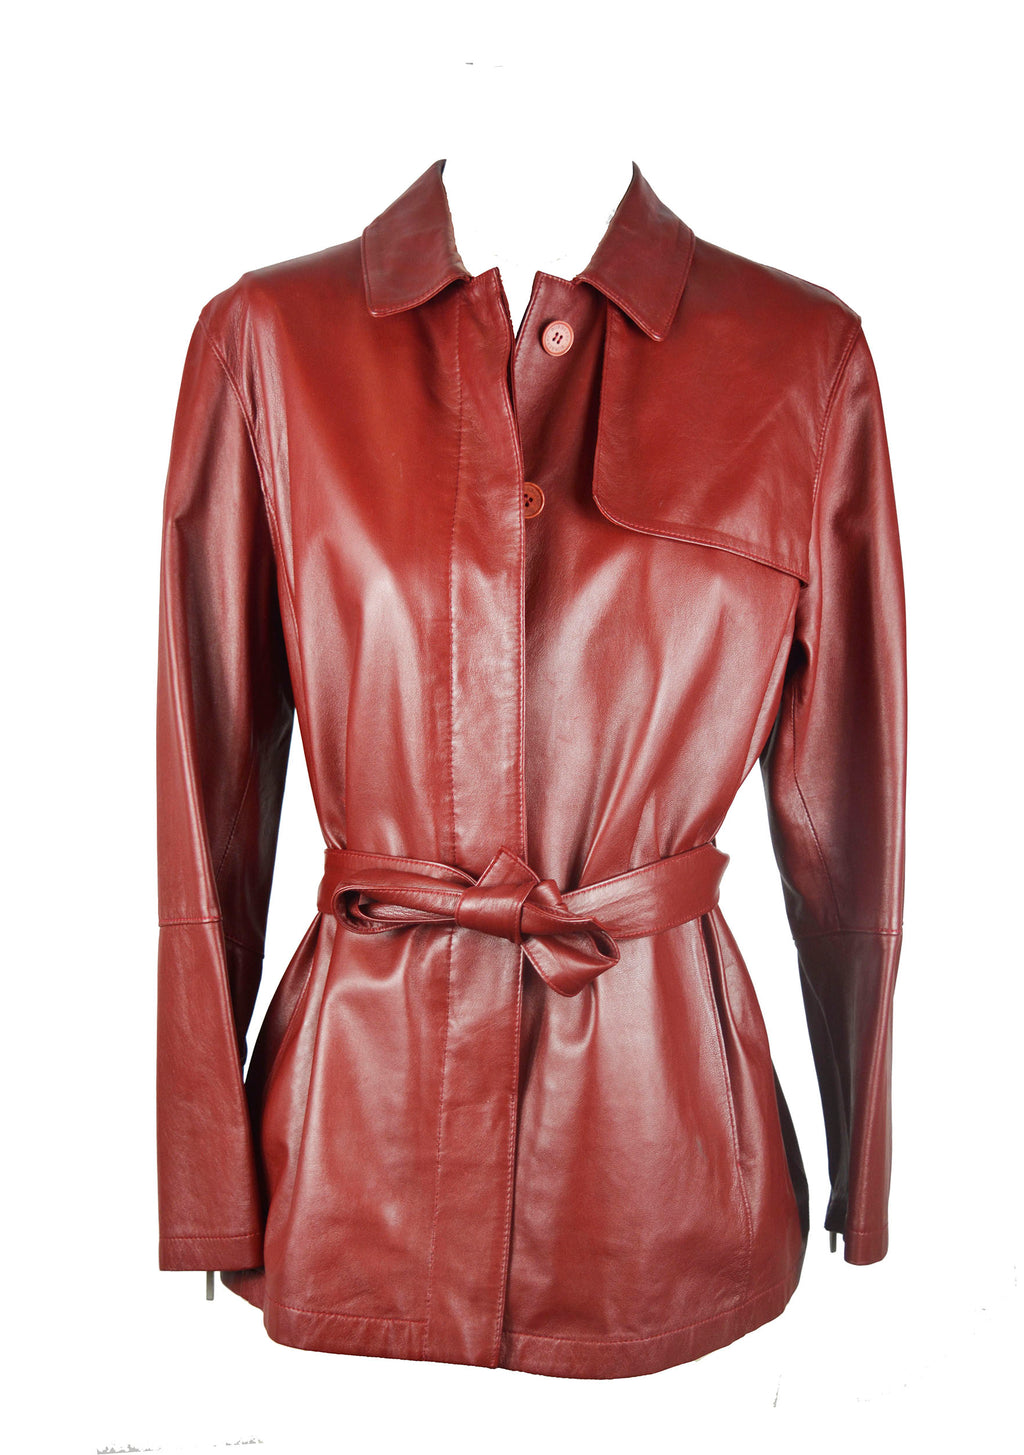 Burberry Bordeaux Leather Belted Jacket Size 40 (EU)